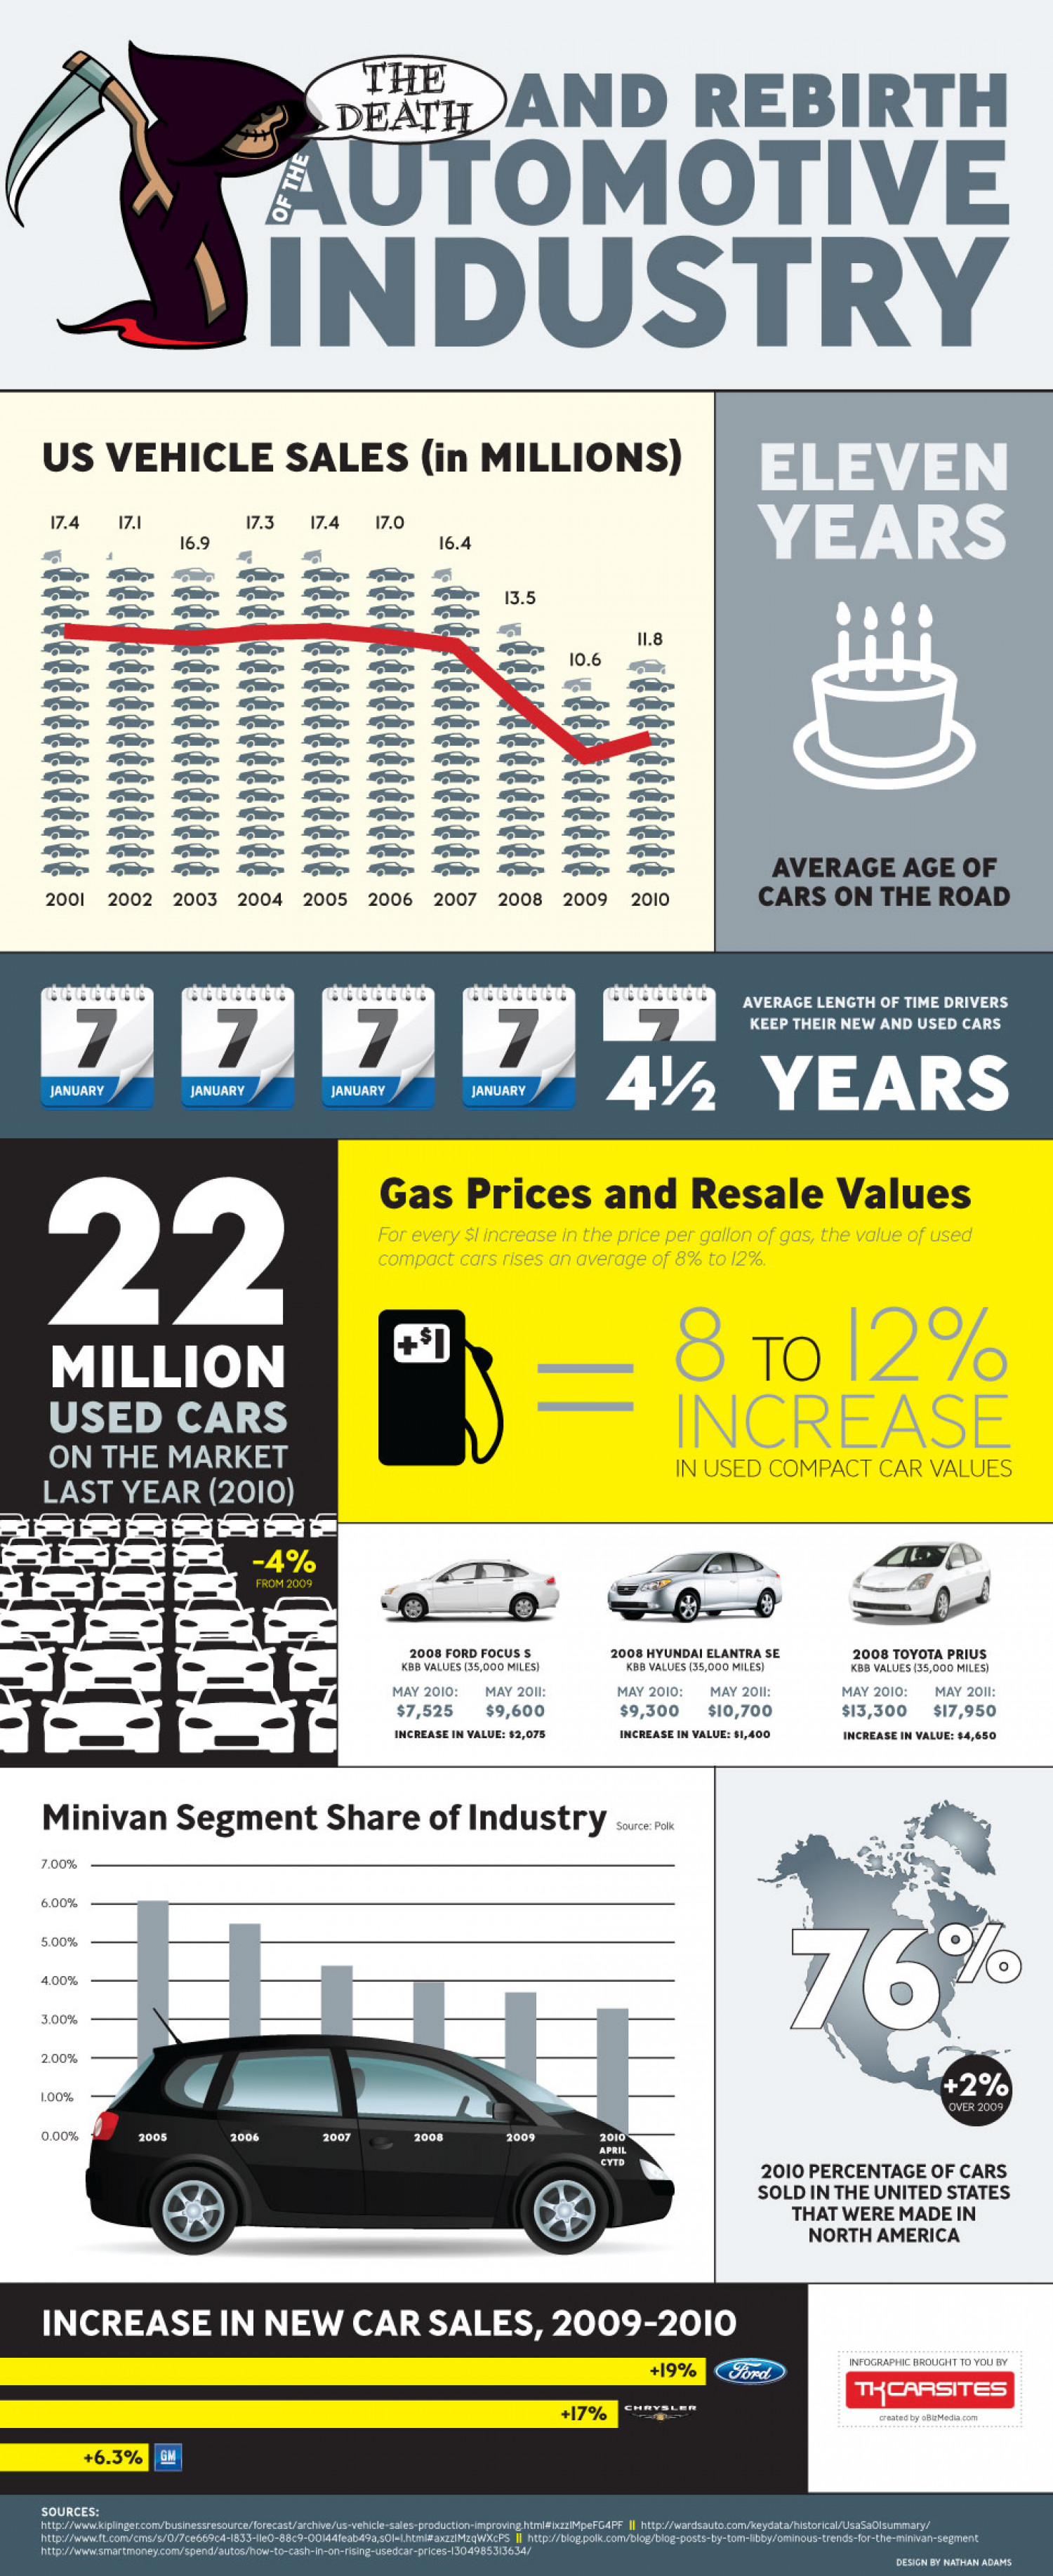 The Death and Rebirth of the Automotive Industry Infographic